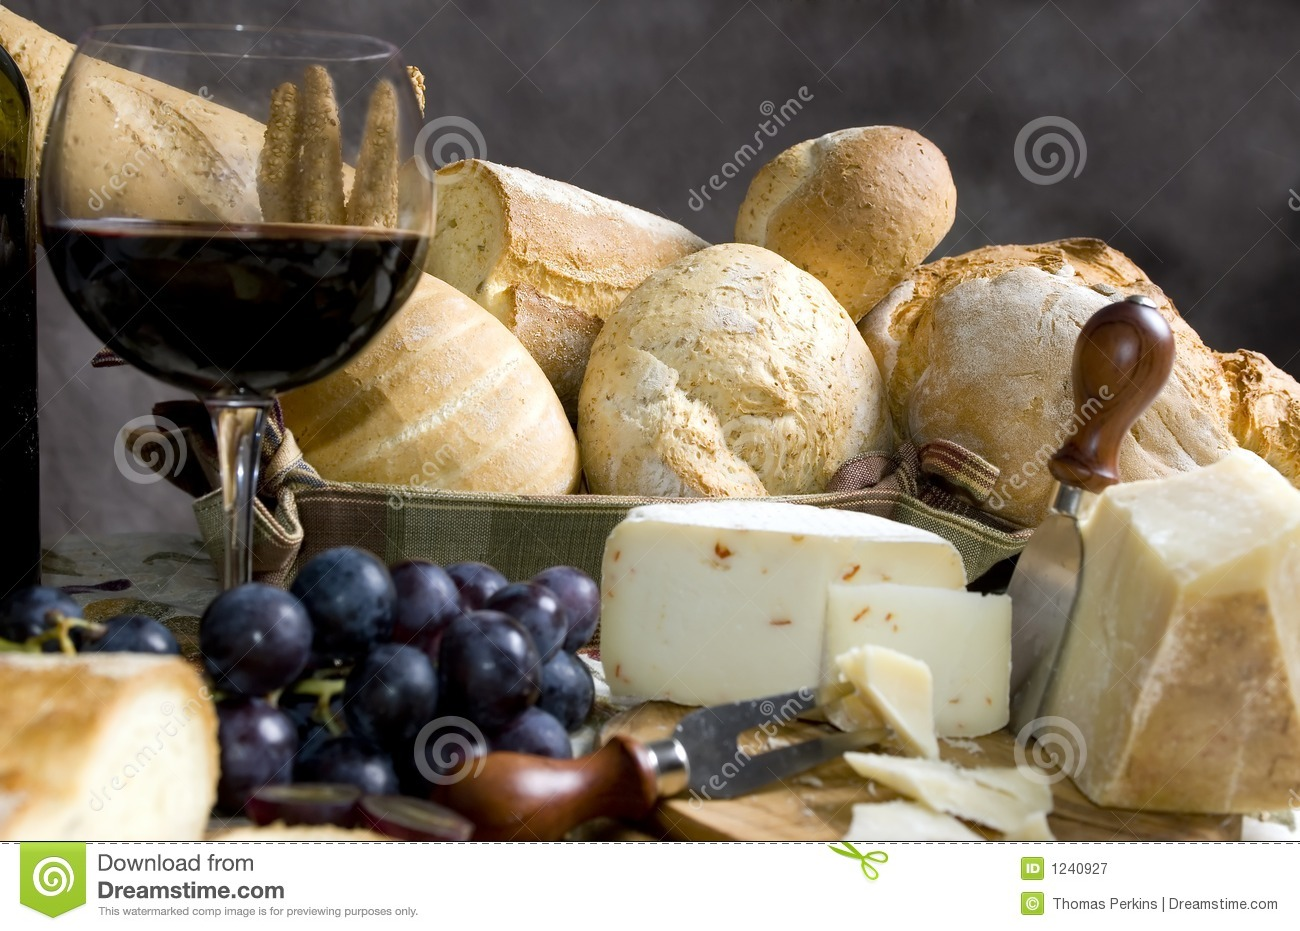 Bread and Cheese with a glass of wine 3